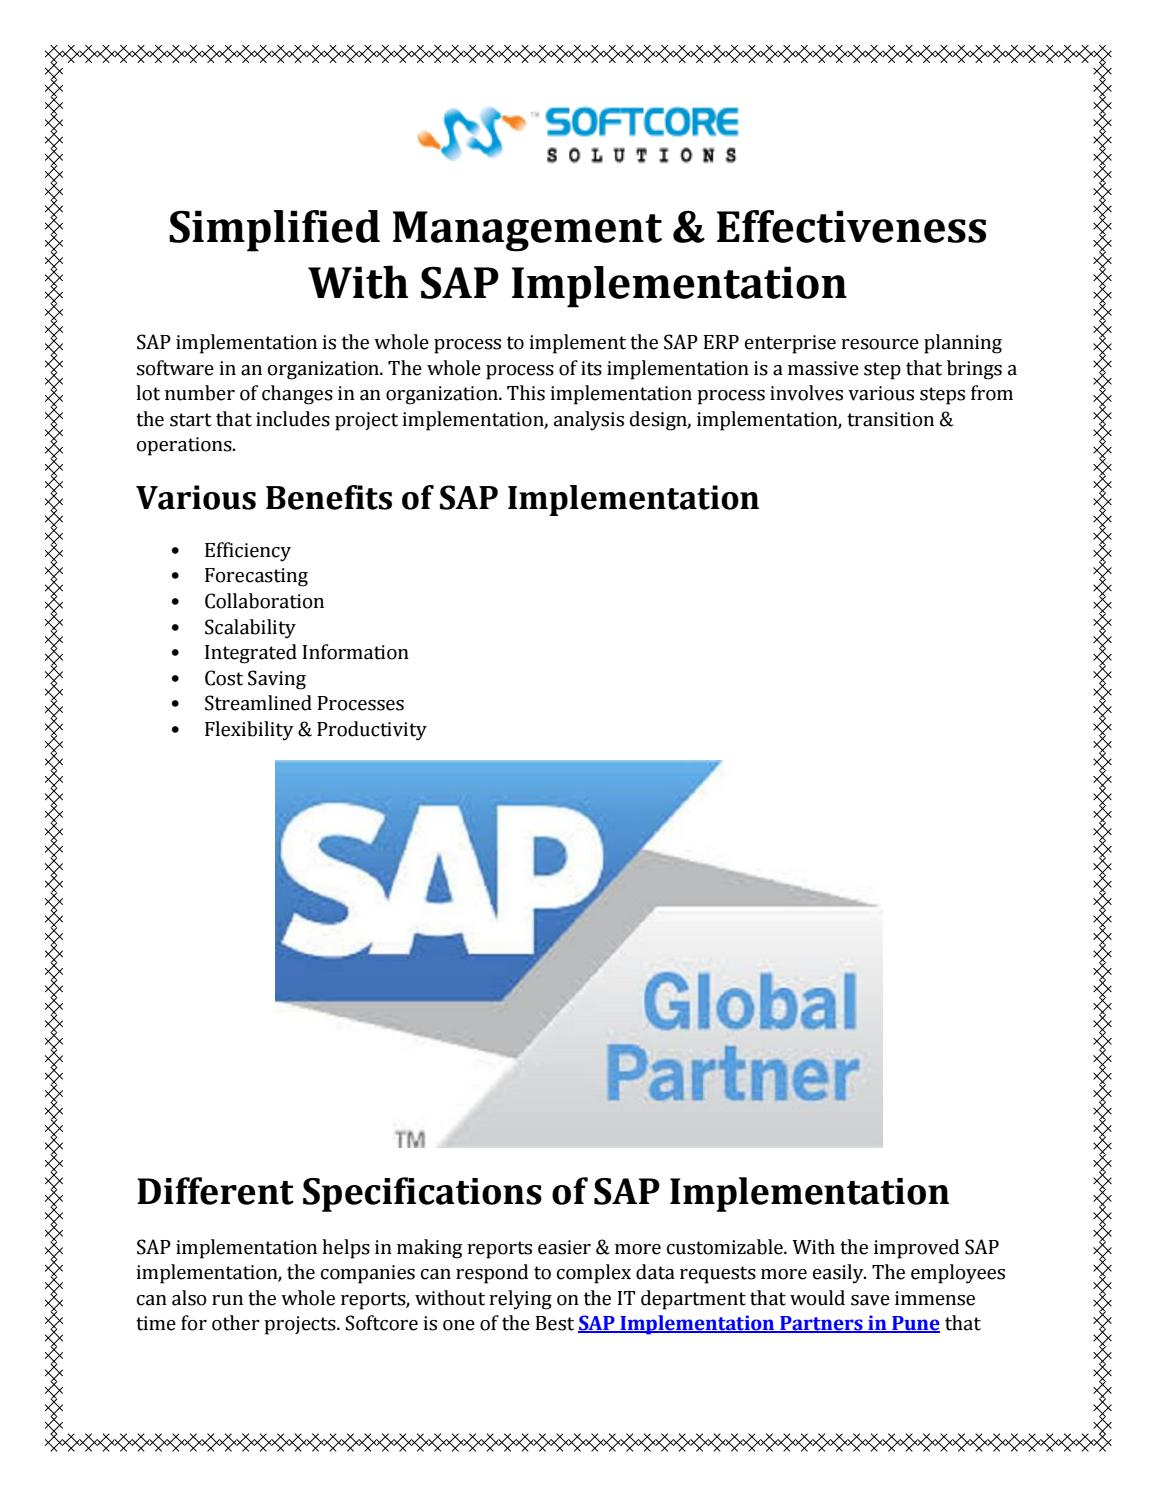 Simplified Management & Effectiveness With SAP